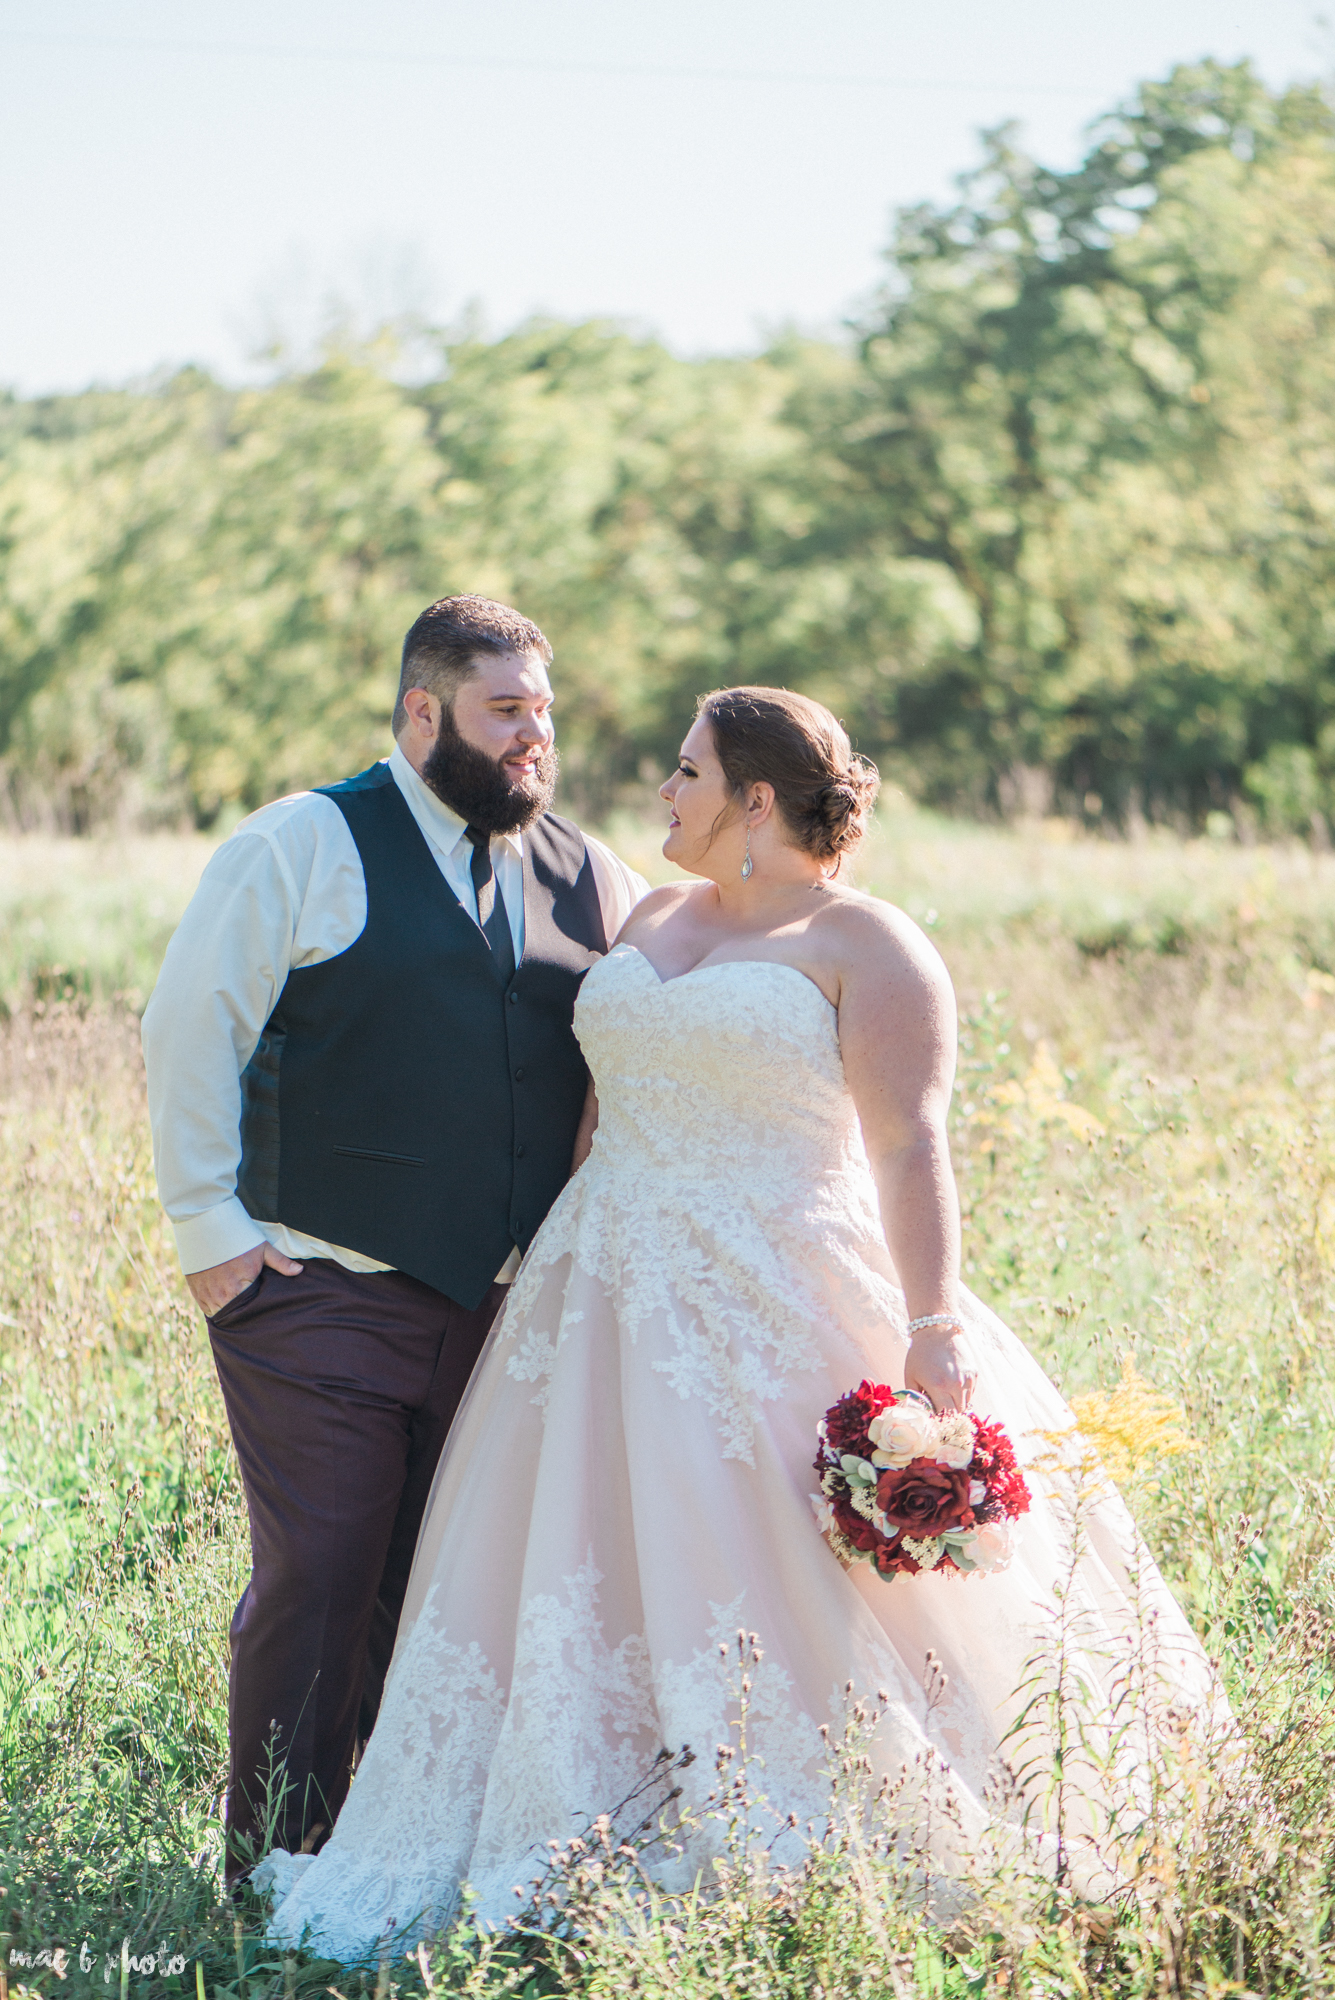 Amber & Kyle's Intimate Rustic Fall Barn Wedding at SNPJ in Enon Valley, PA Photographed by Mae B Photo-2.jpg